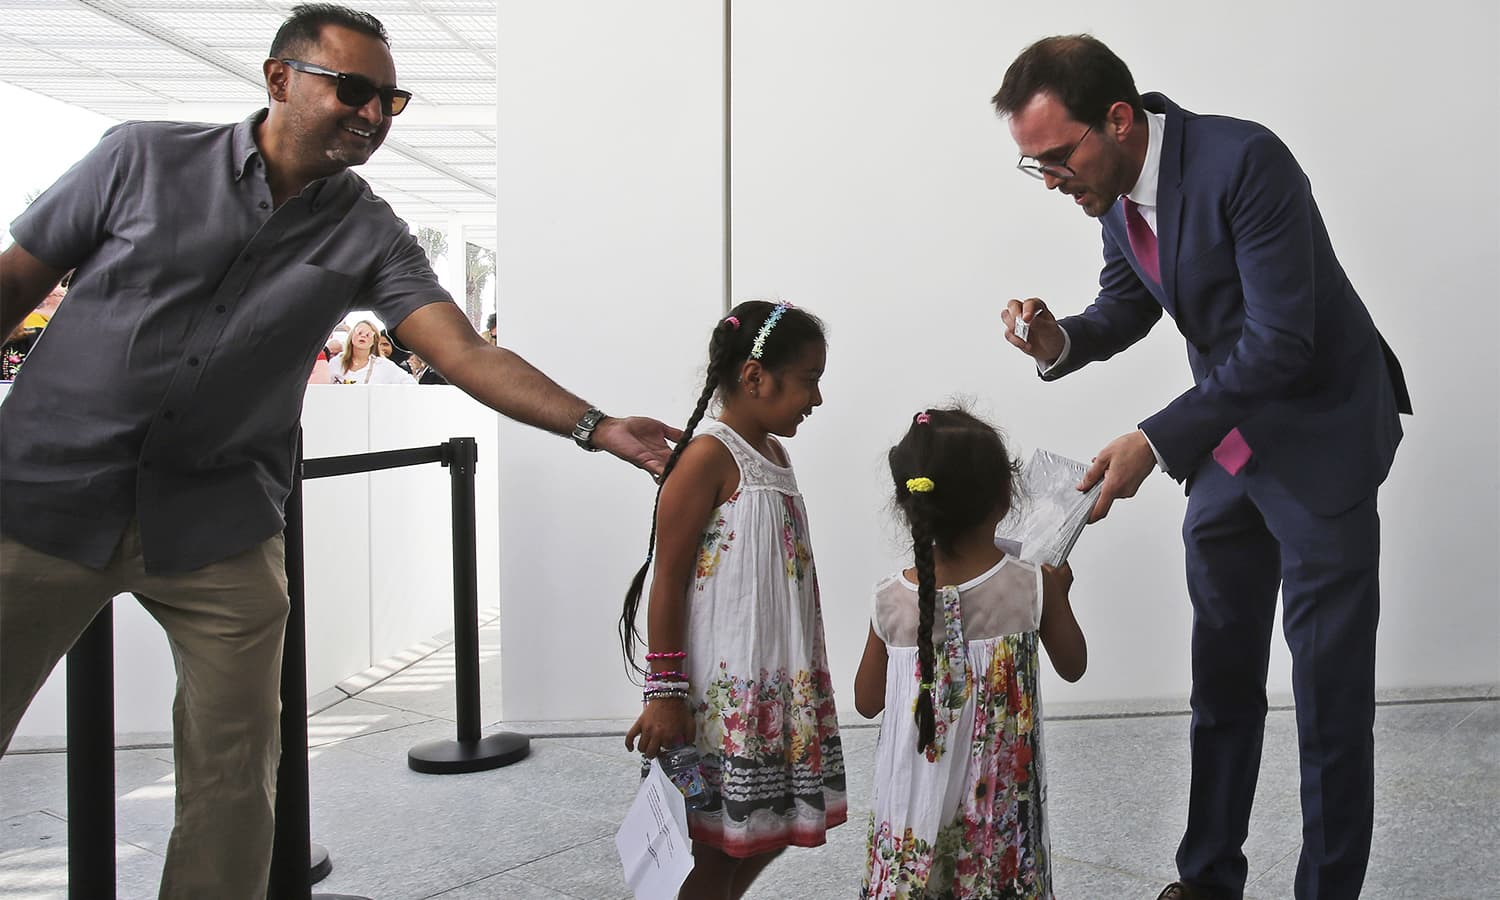 The president-director of the Louvre Museum, Jean-Luc Martinez, right, gives gifts to the two daughters of a family for being the first visitors at the Louvre Museum in Abu Dhabi. — AP